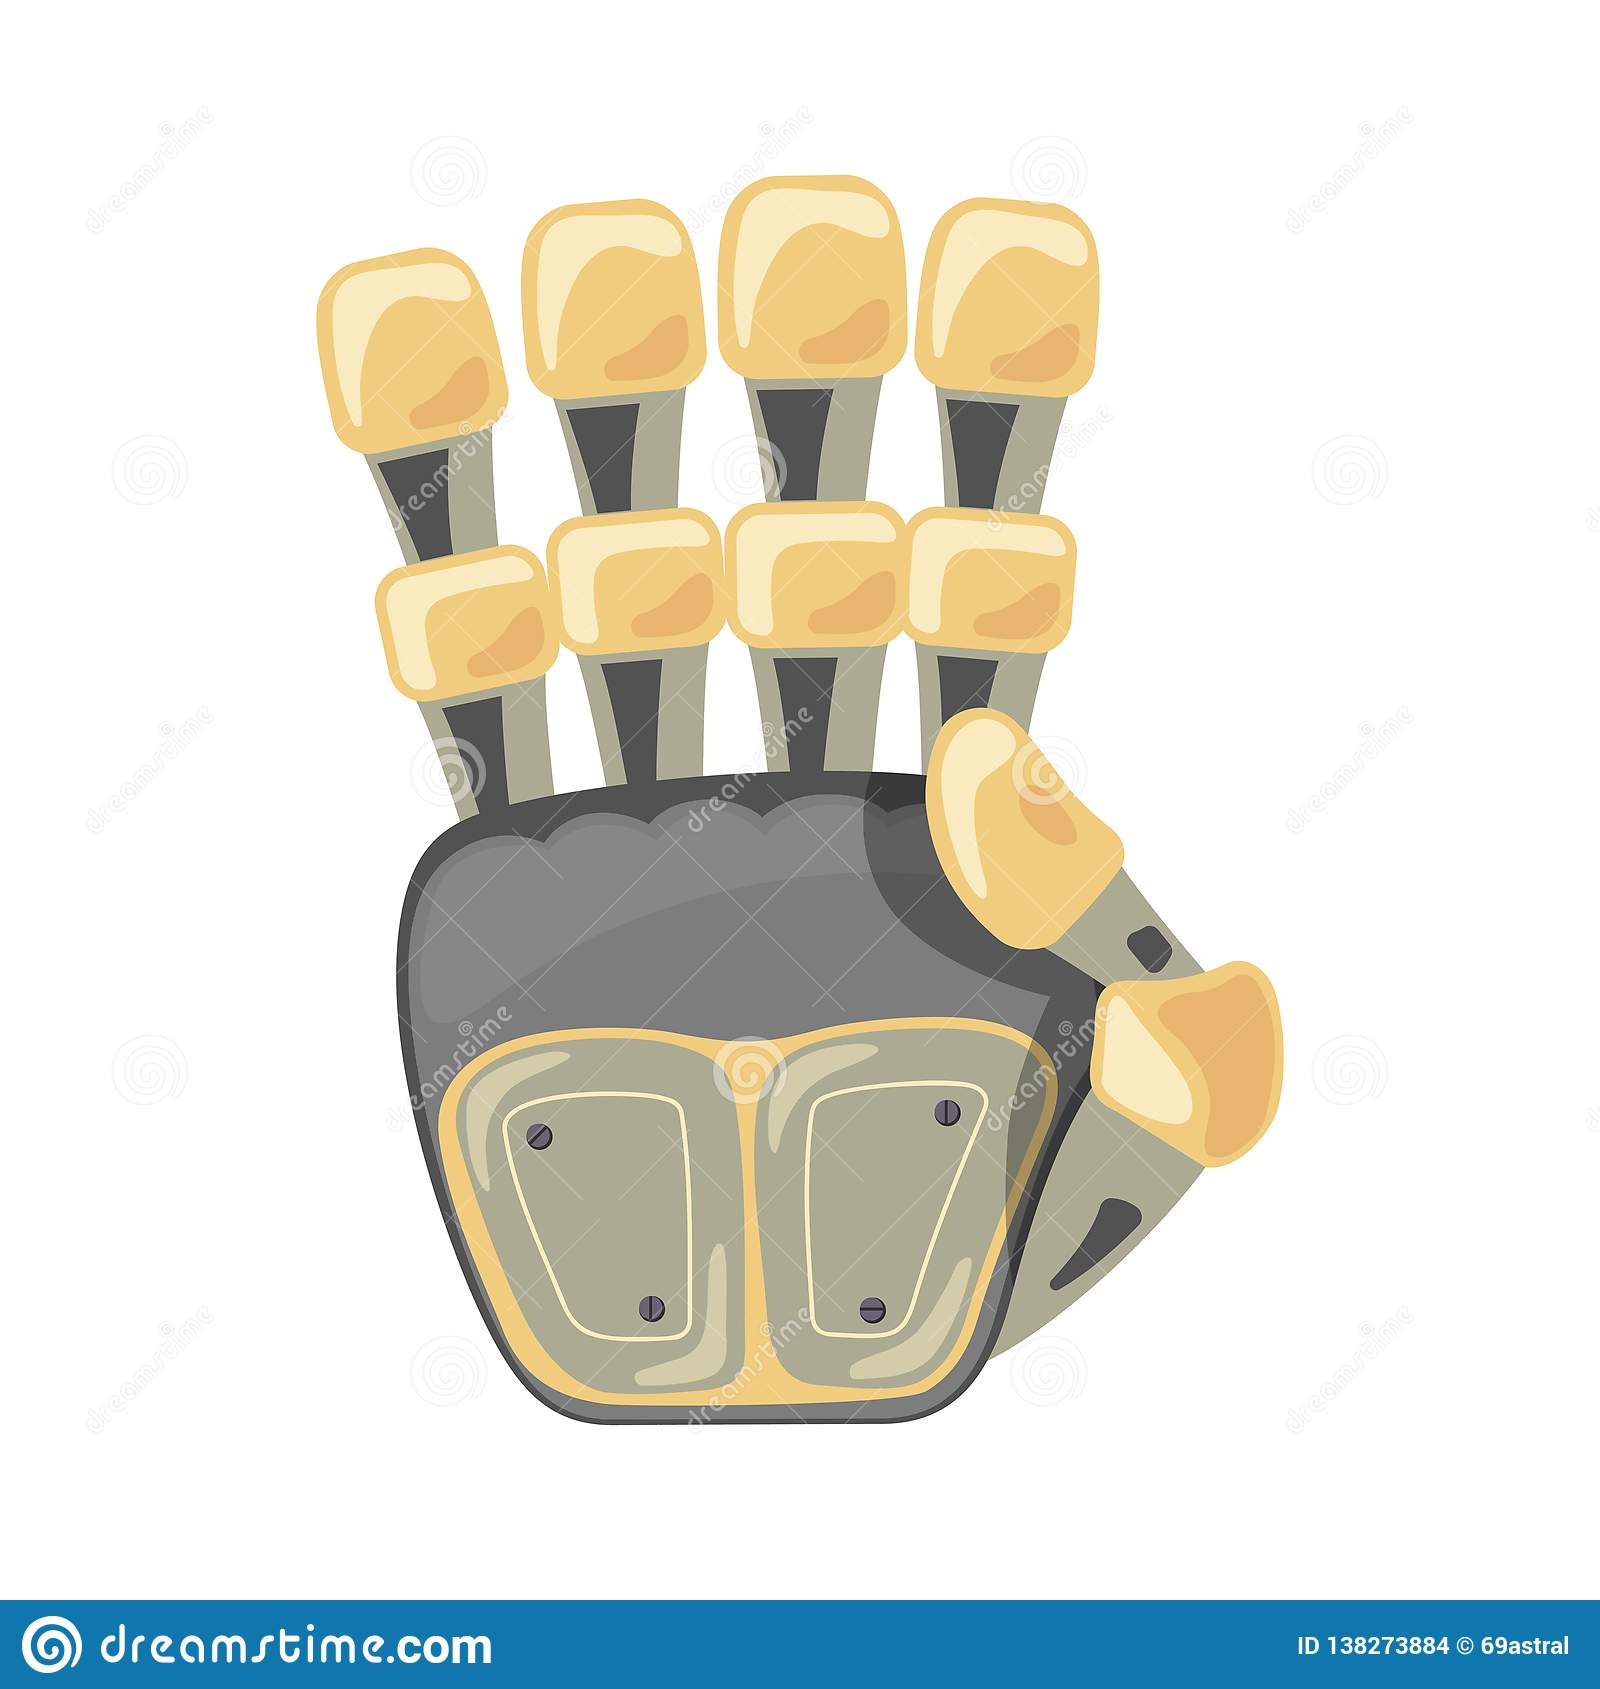 Robot hand. Mechanical technology machine engineering symbol. Hand gestures. Four number. Fourth. Futuristic design.